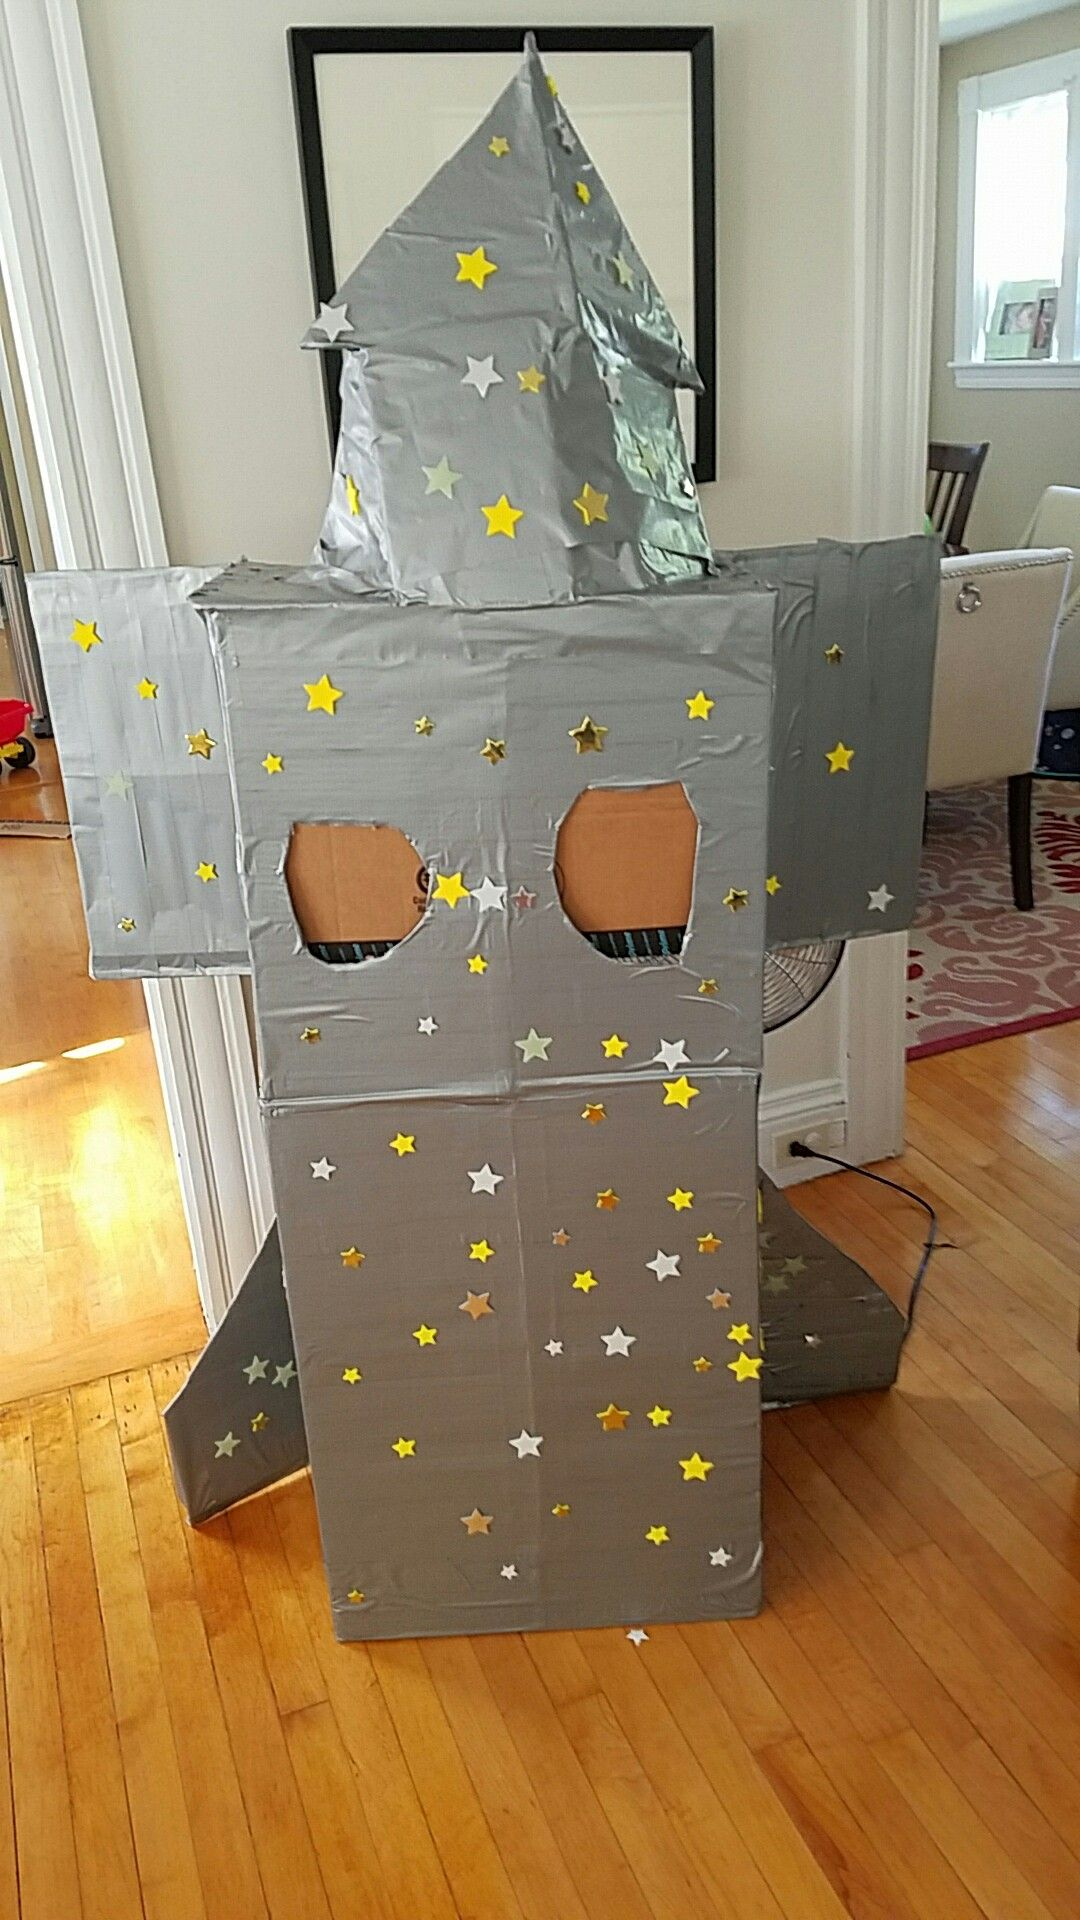 Cardboard and duct tape rocket ship. Very popular with the kids!